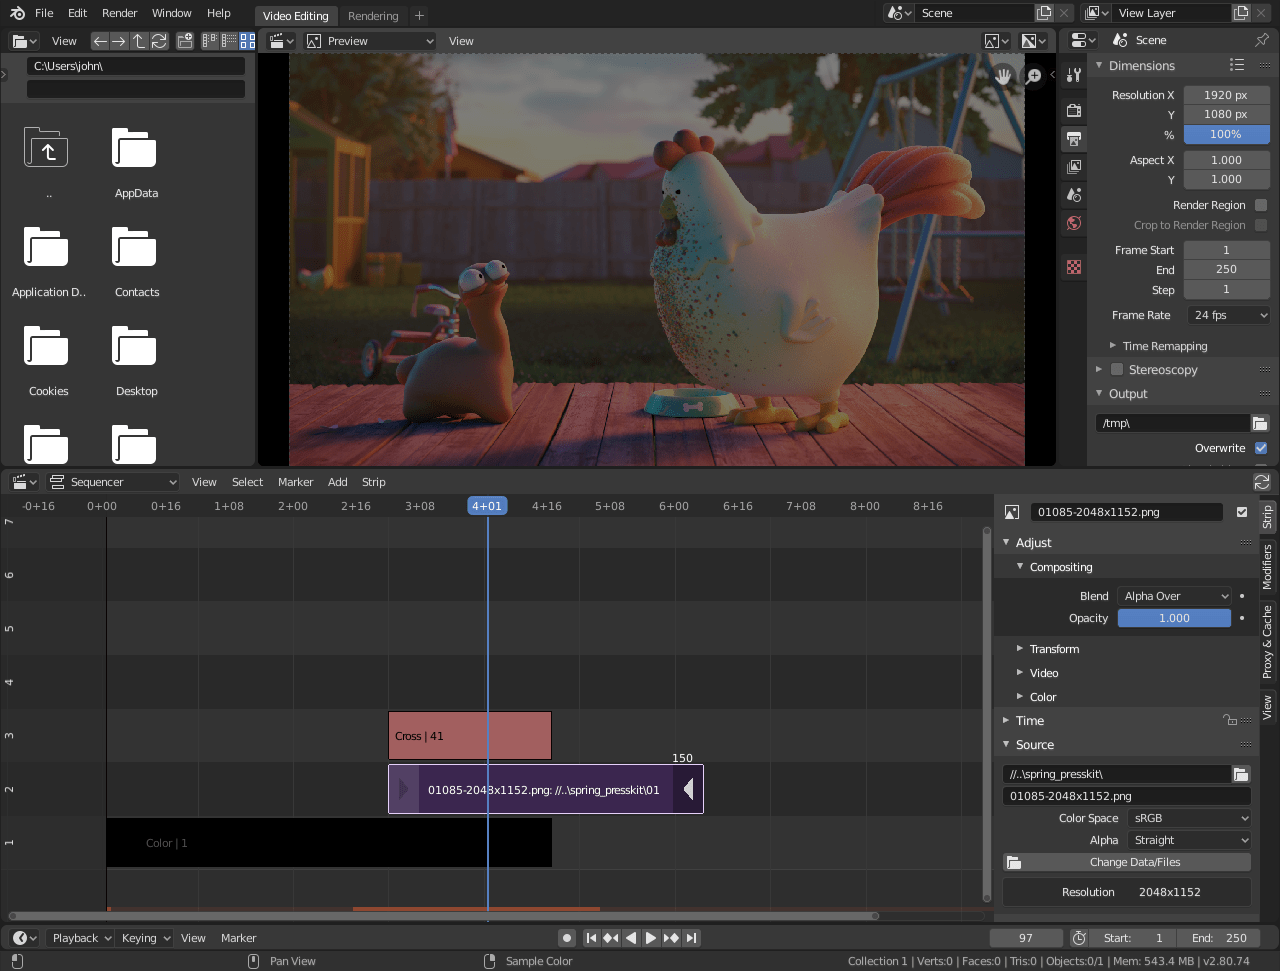 Best Video Editing Software For Windows 10 For Free - Blender